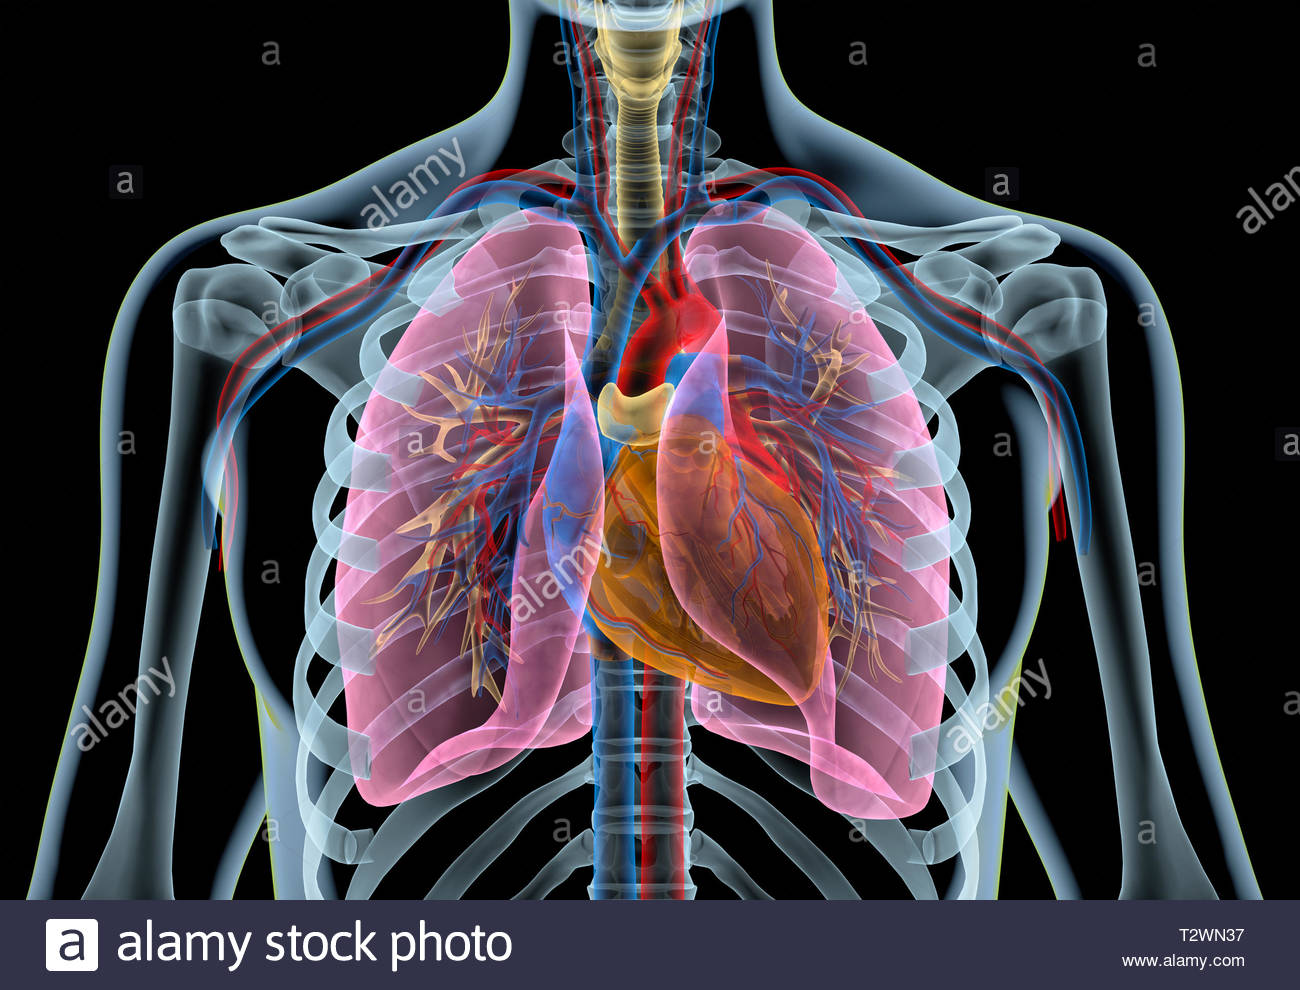 photo of lungs and heart